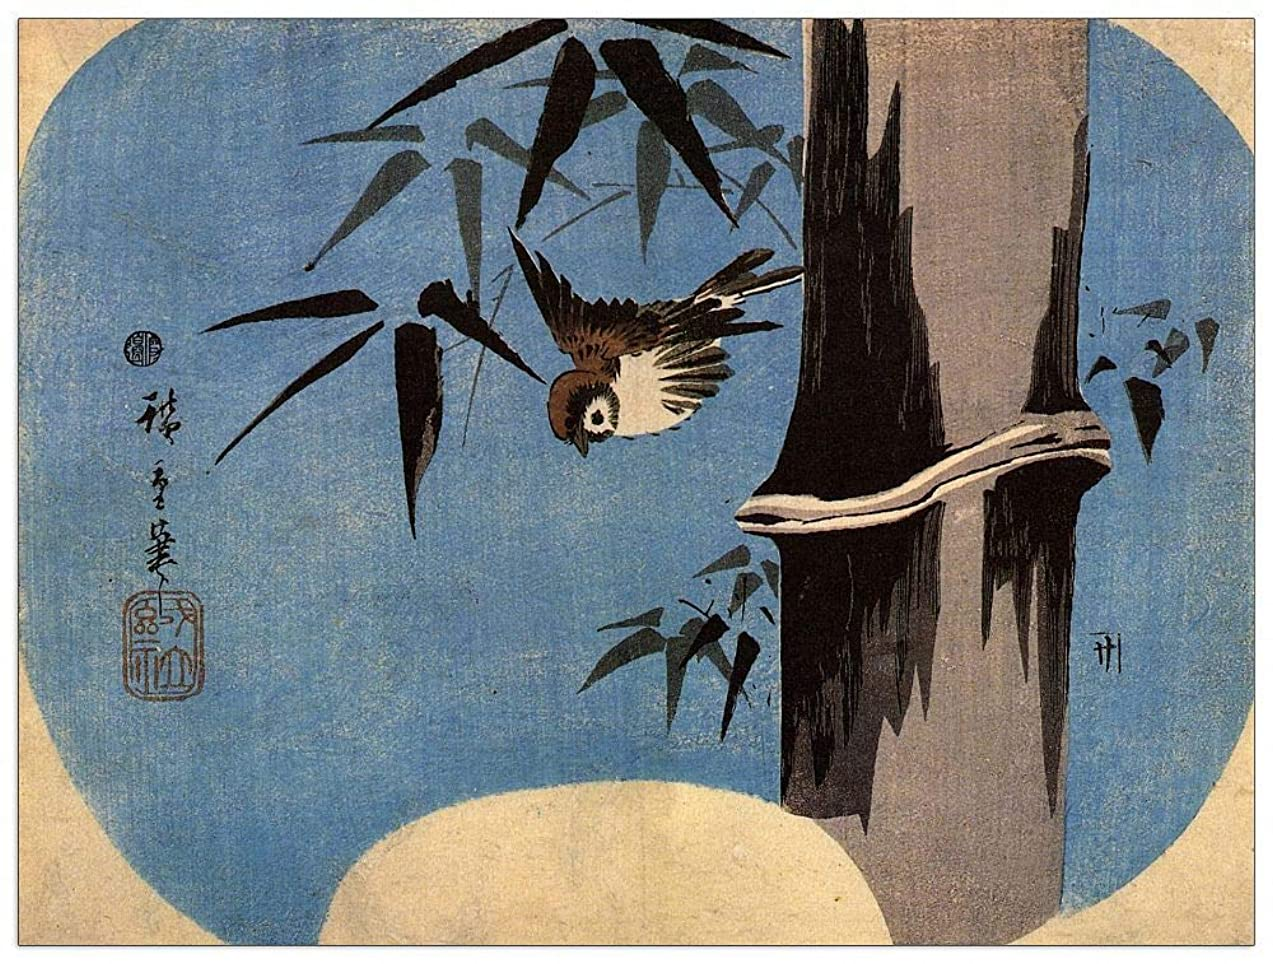 ArtPlaza TW93015 Hiroshige Utagawa - Sparrow and Bamboo II Decorative Panel 35.5x27.5 Inch Multicolored